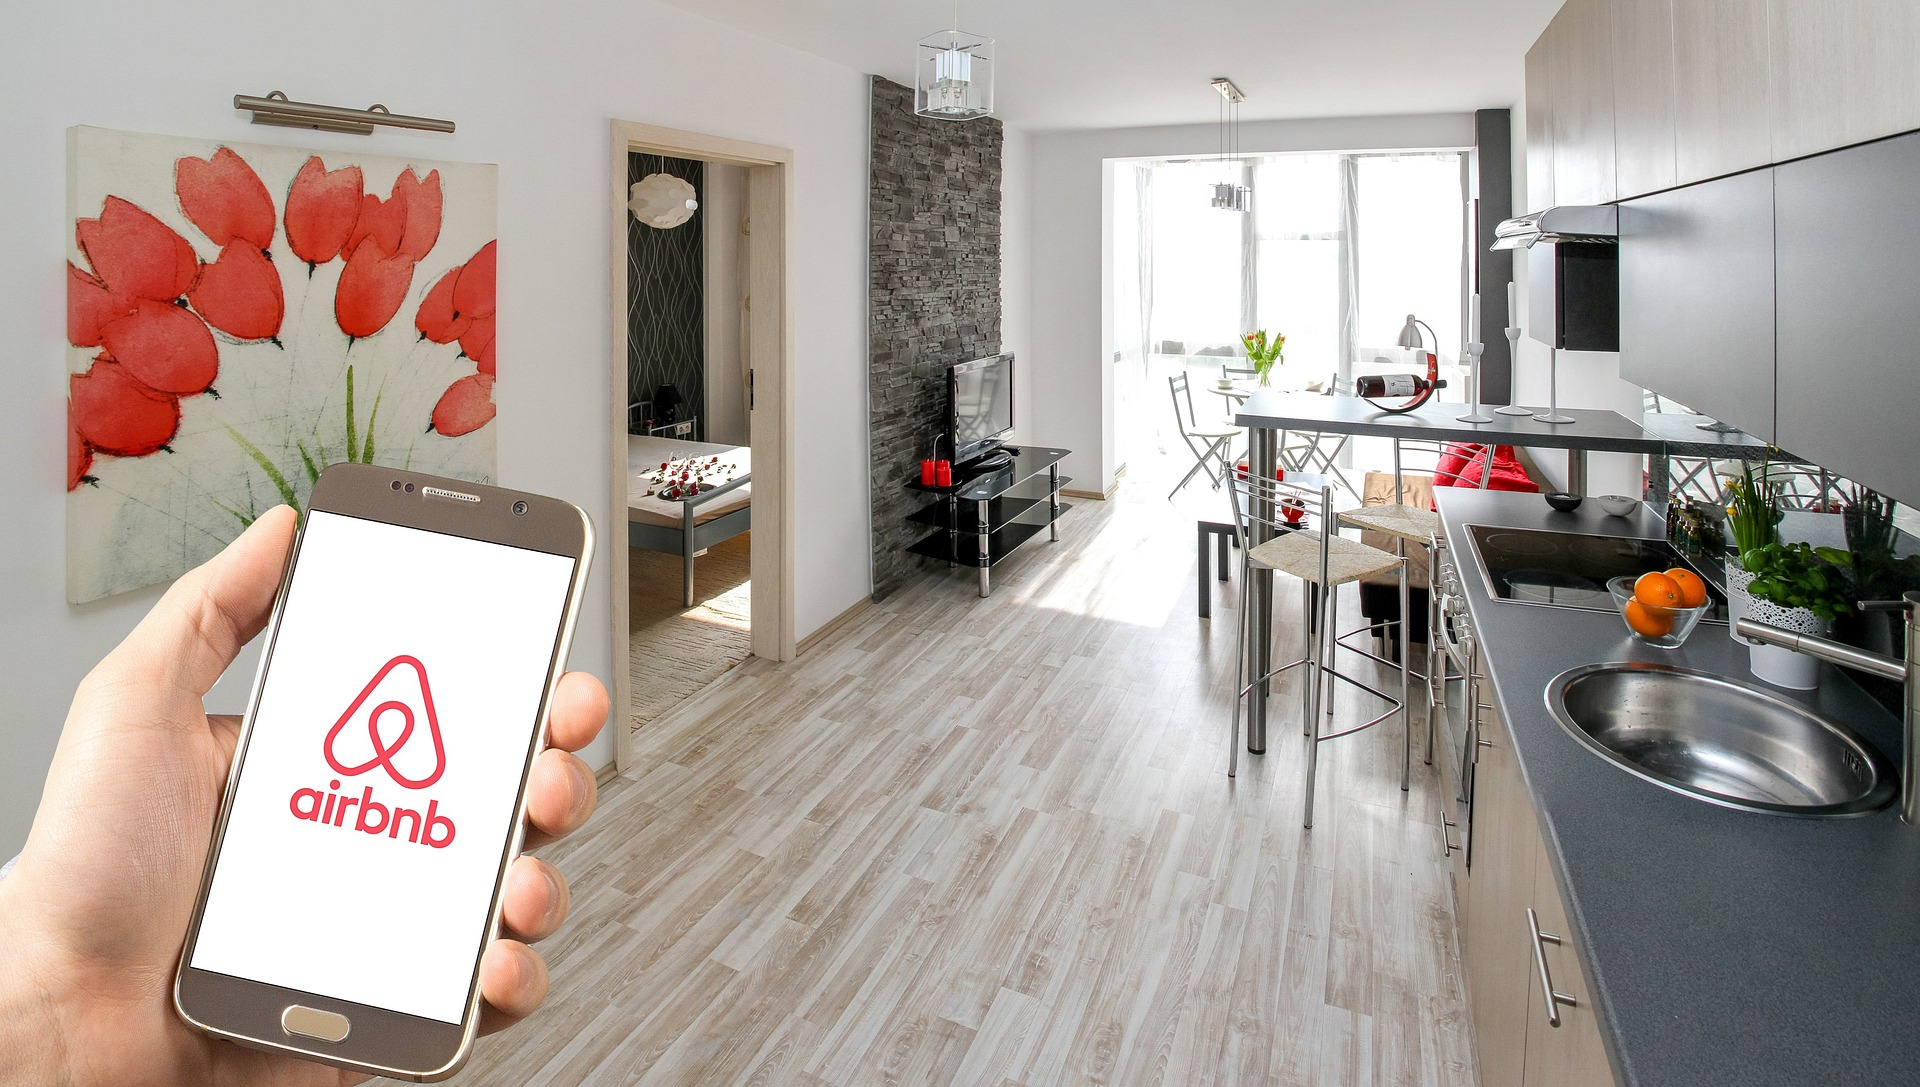 Short Term Rental Accommodations to Cease Operations in NOTL